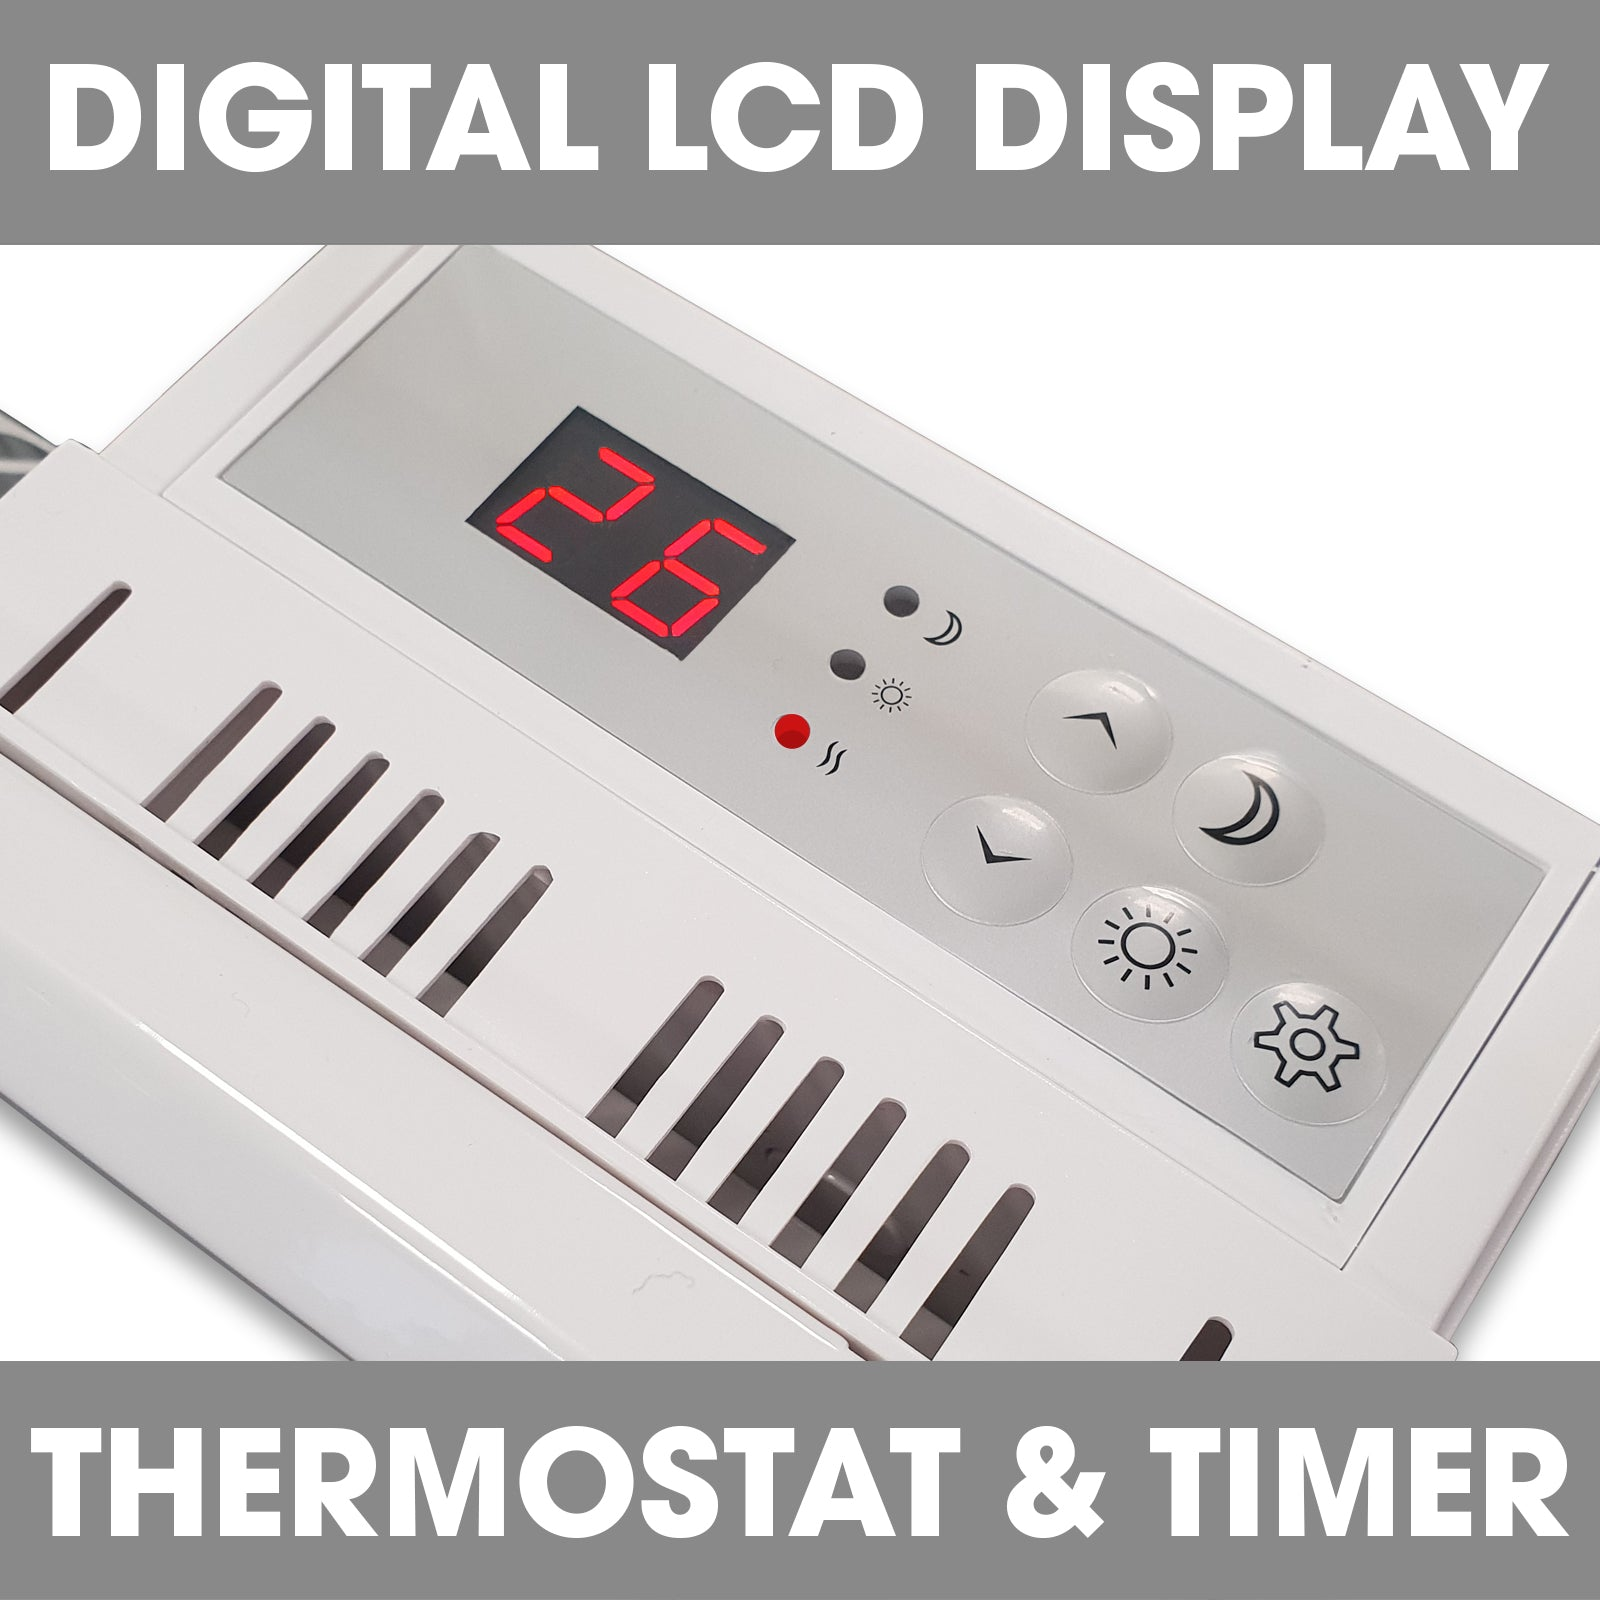 Details about  /1500 W Portable Electric Bedroom Space Heater Adjustable Thermostat LCD Display